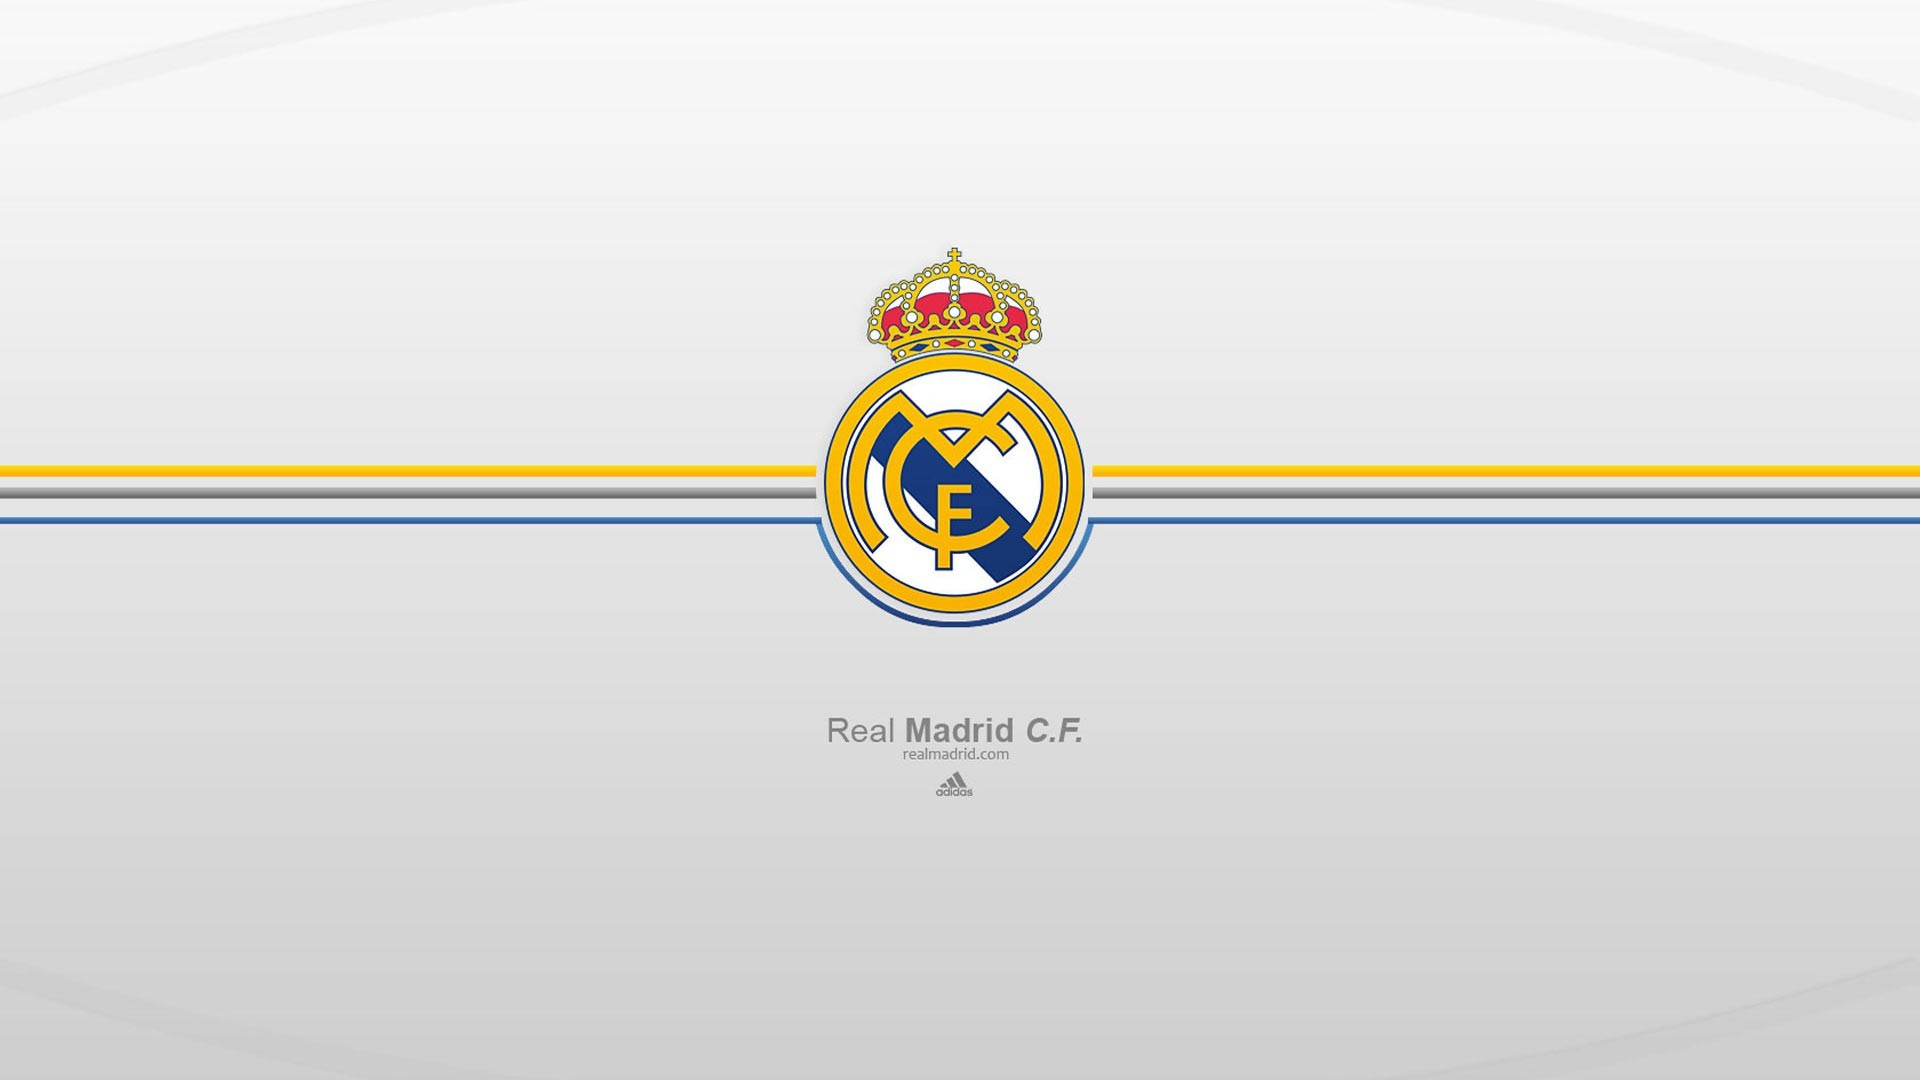 1920x1080 - Real Madrid C.F. Wallpapers 2